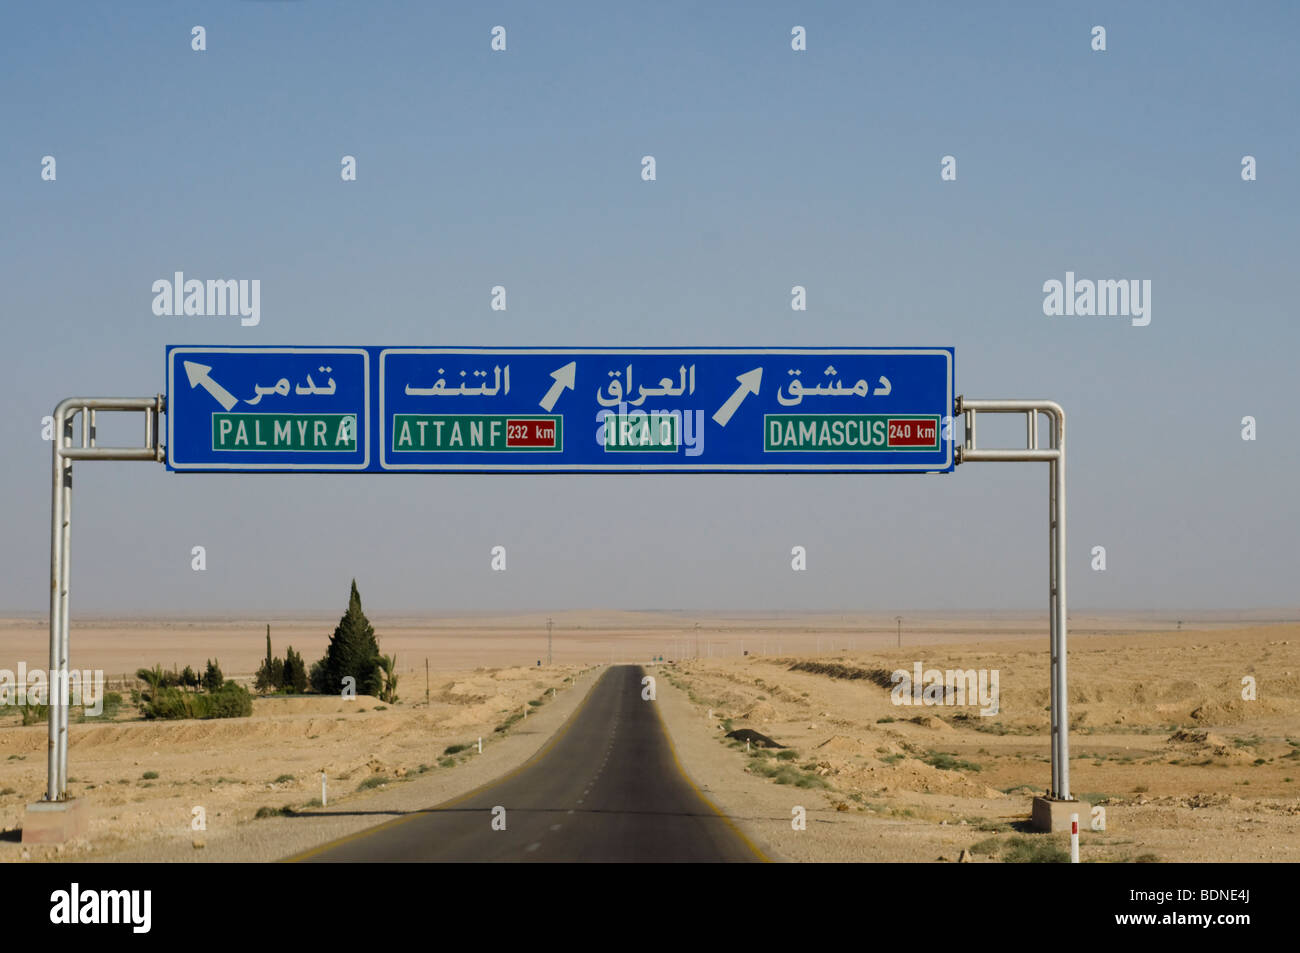 Road signs along a Syrian highway point the way to Iraq and the Syrian capital of Damascus. - Stock Image